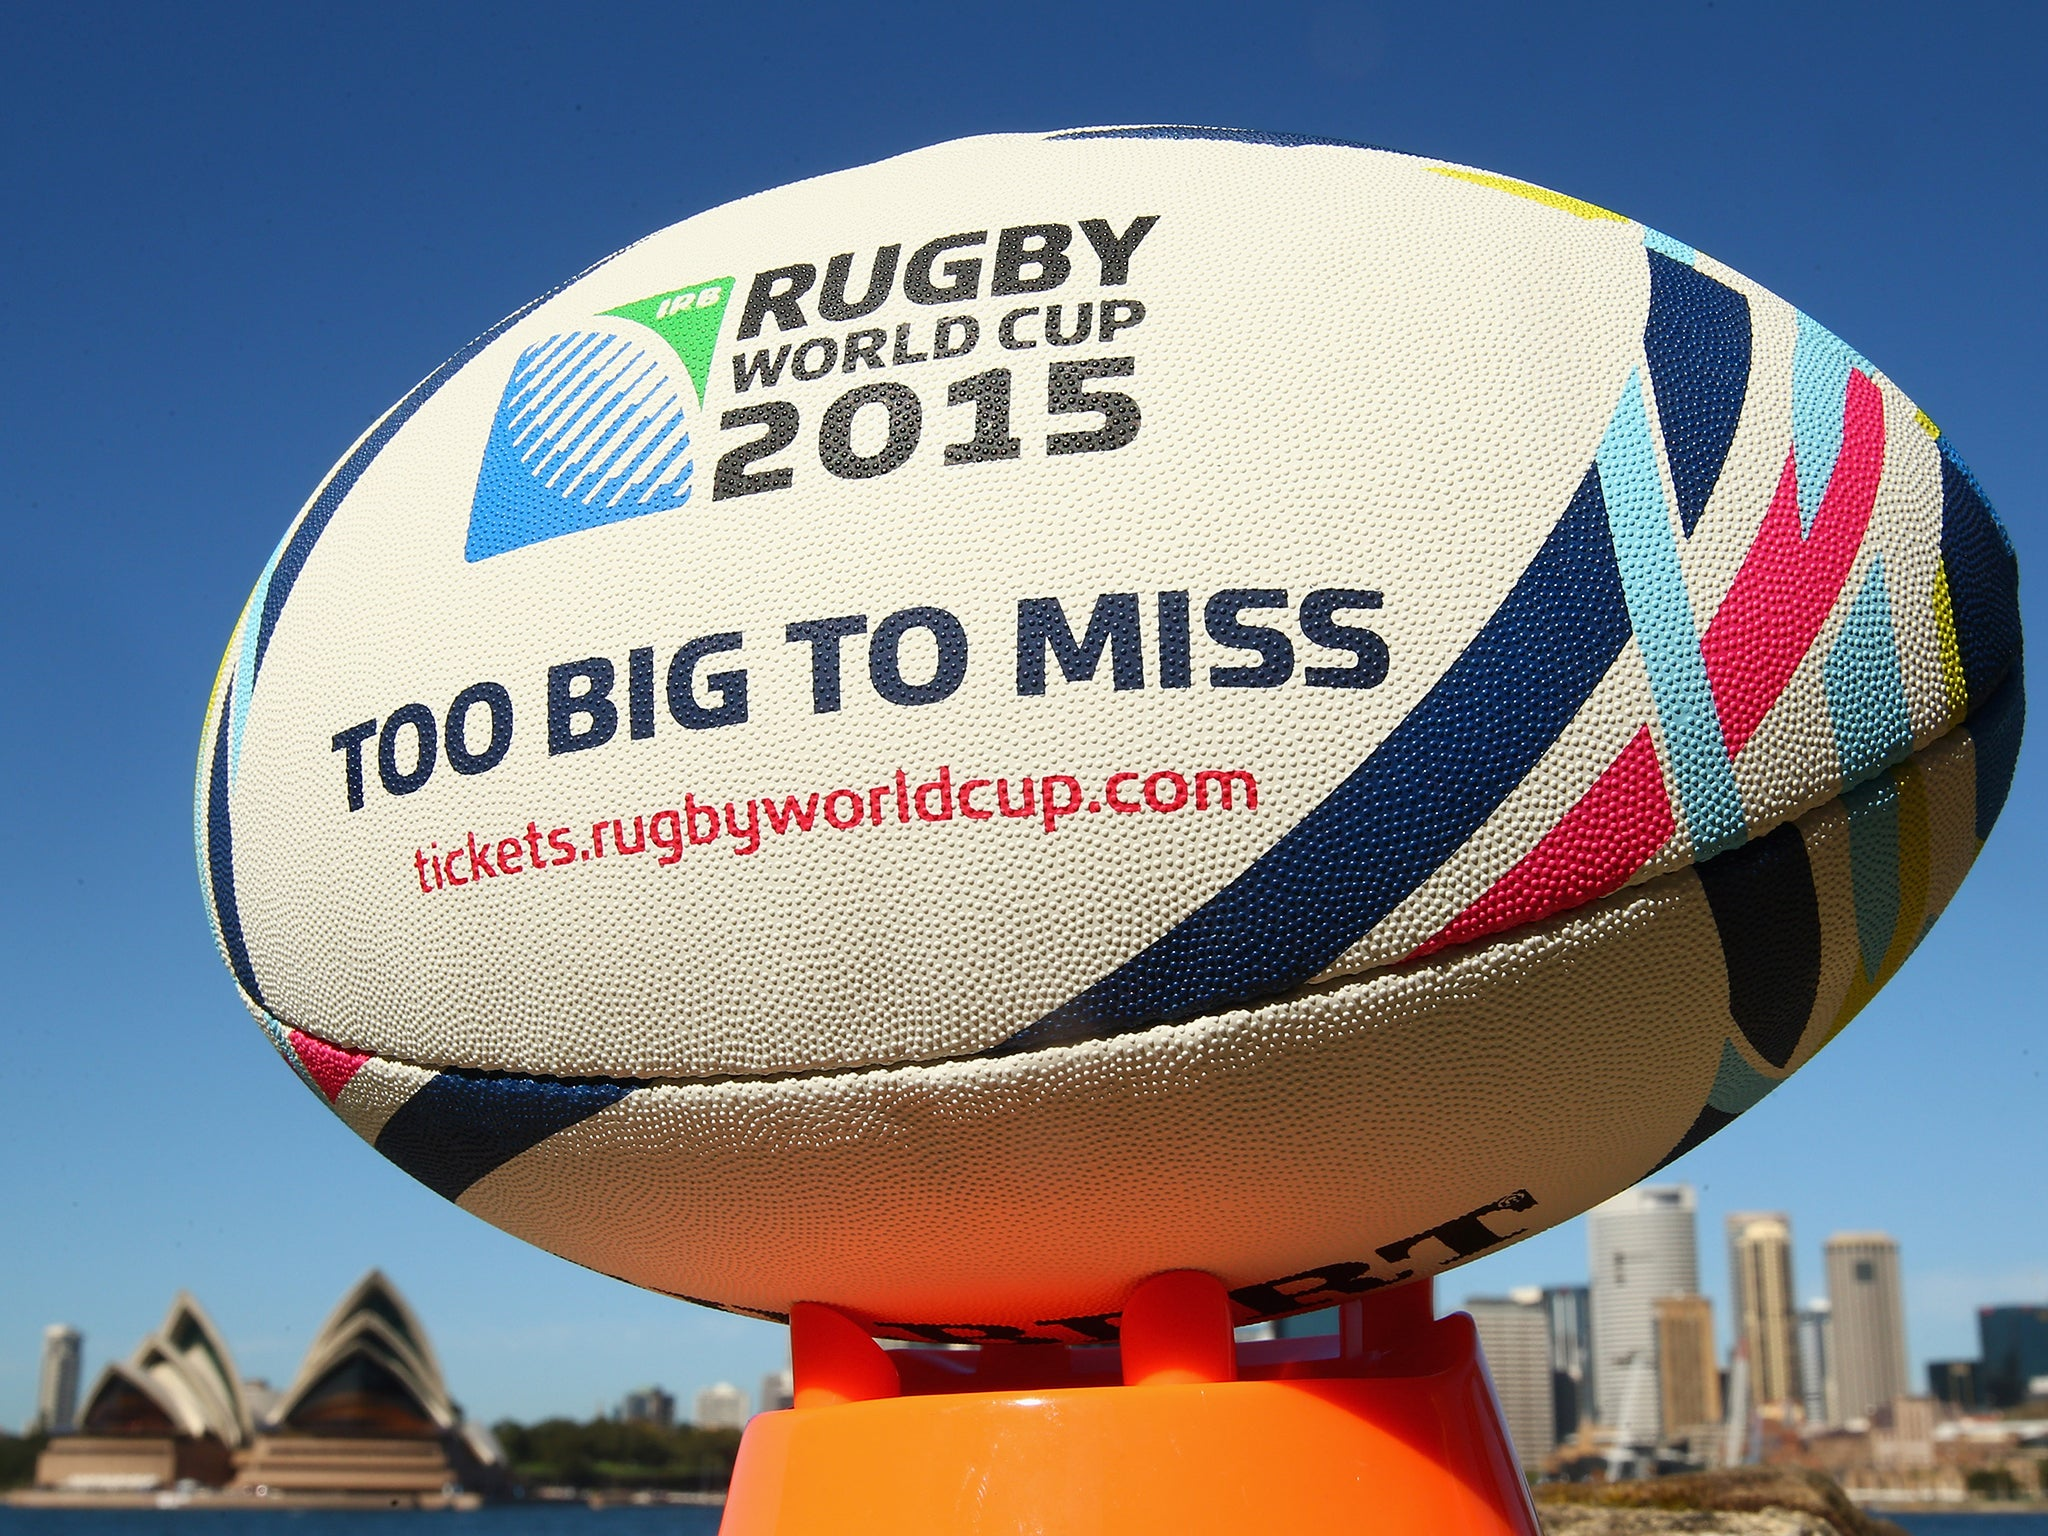 Rwc 2015 Schedule Related Keywords & Suggestions - Rwc 2015 Schedule ...